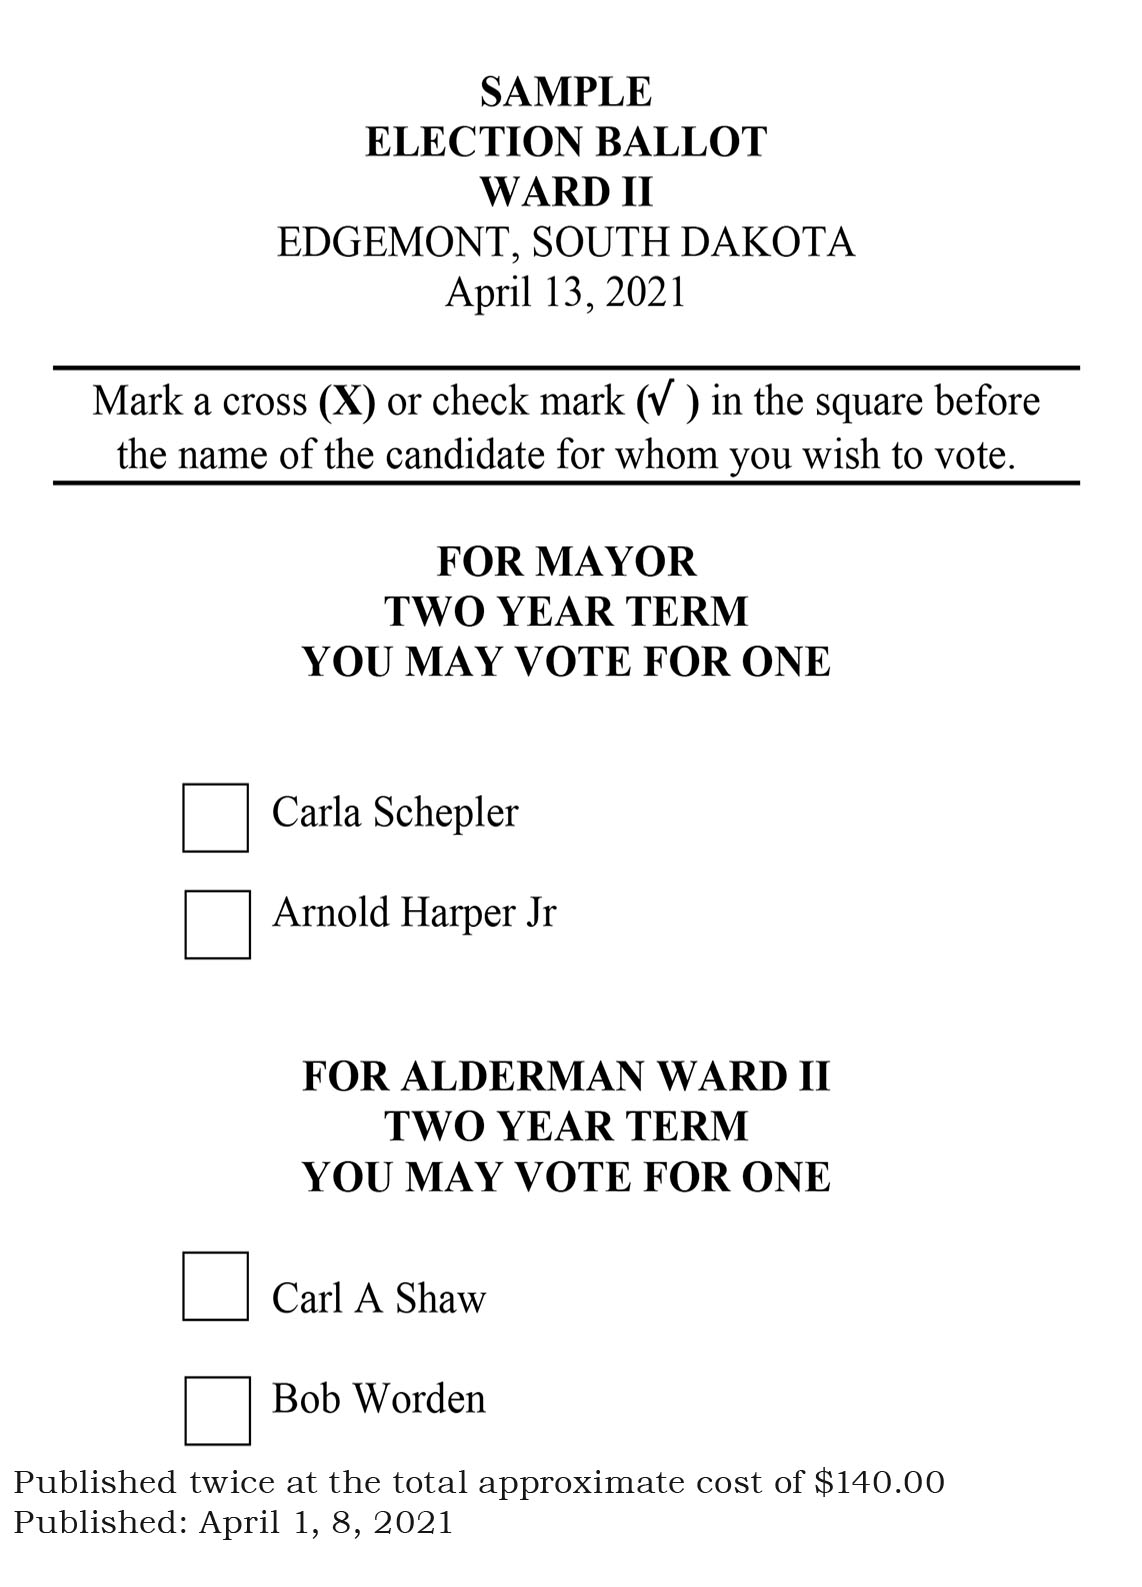 City of Edgemont Sample Ballot Ward II